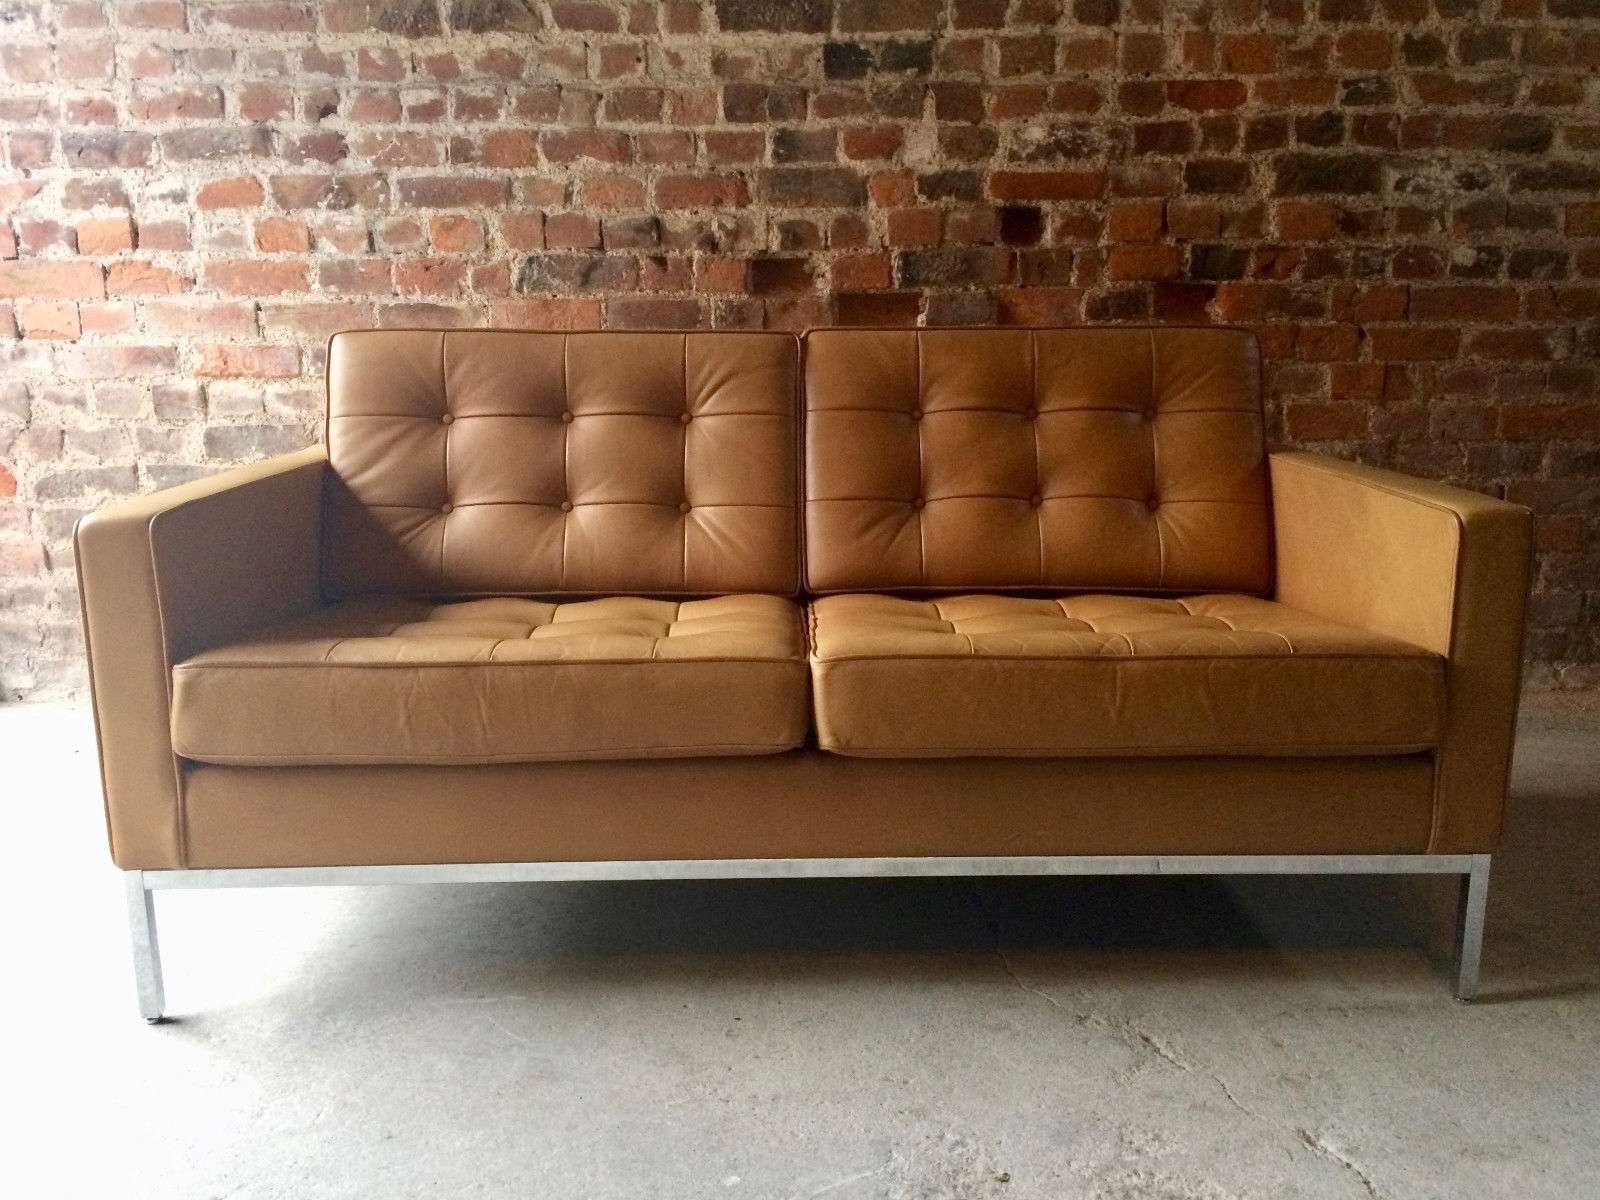 Florence Sofas And Loveseats In Popular Vintage 2 Seater Leather Sofaflorence Knoll For Knoll For Sale (View 6 of 20)